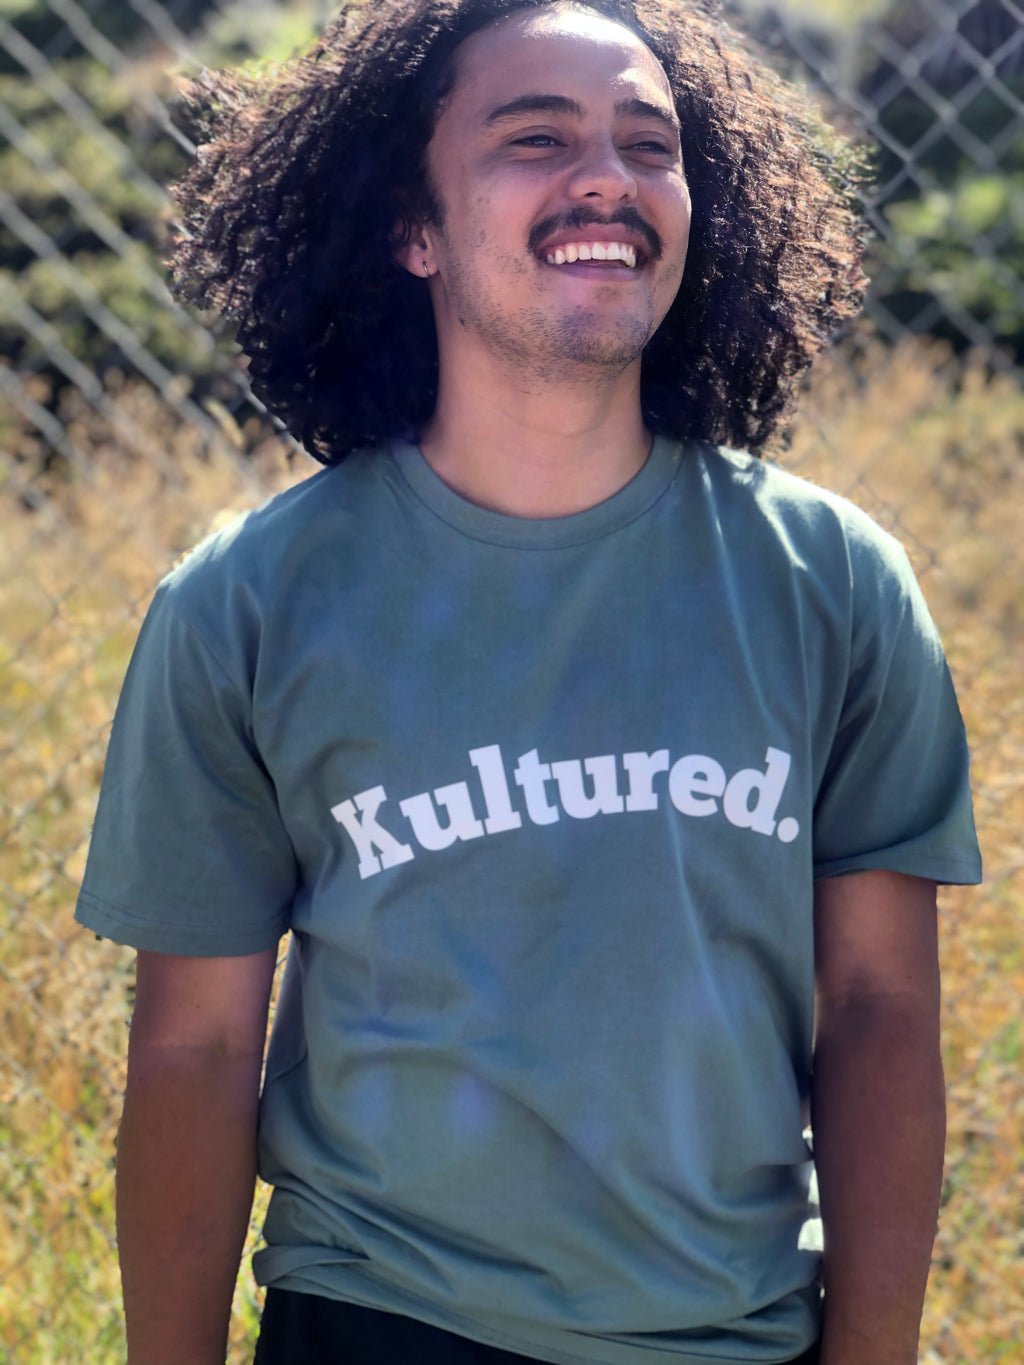 Kultured Original - Ruānuku (Wise old Sage) lol